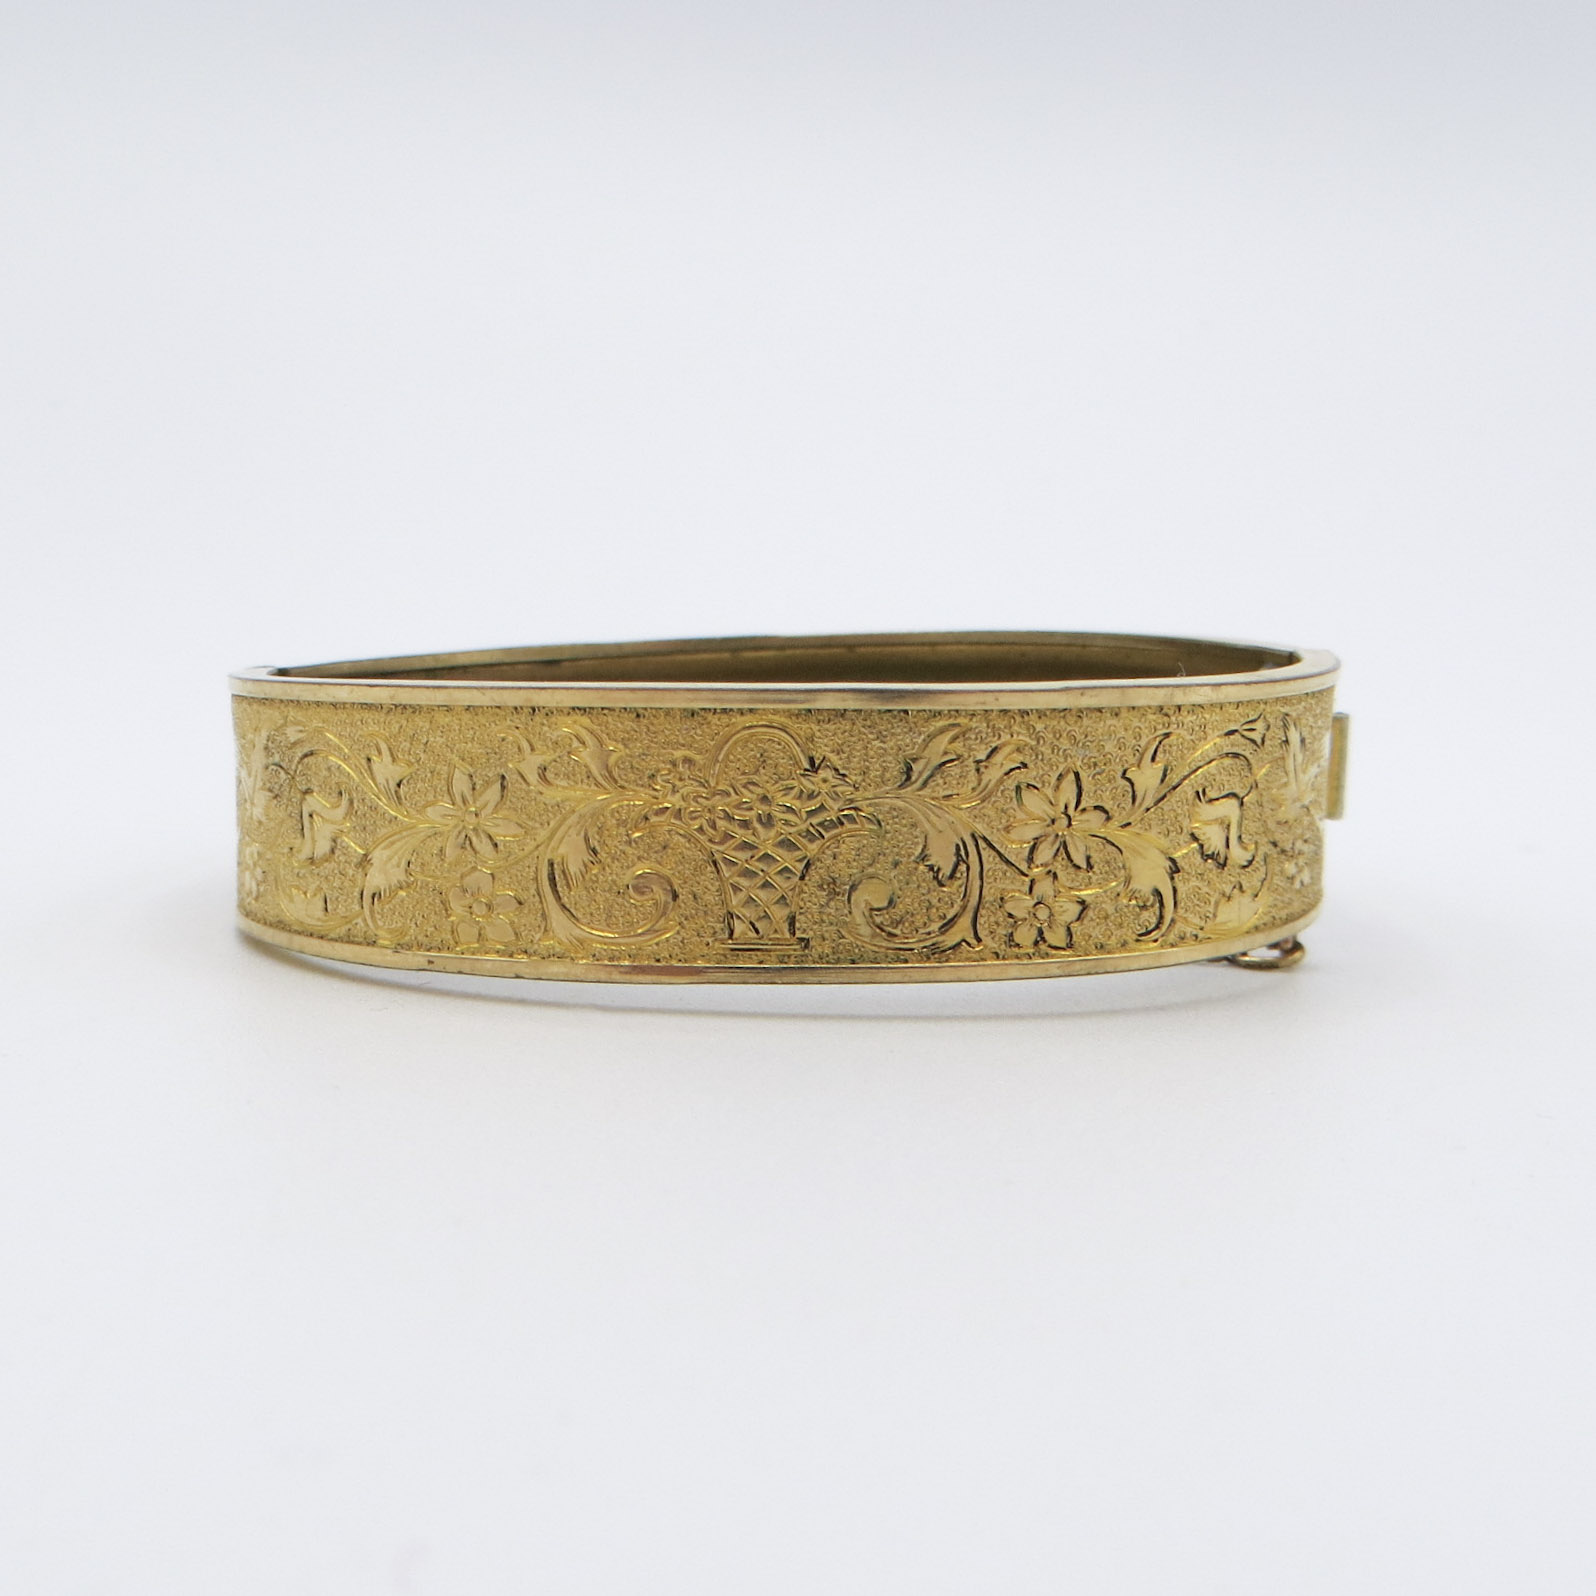 Gold-Filled Flower Basket Bracelet